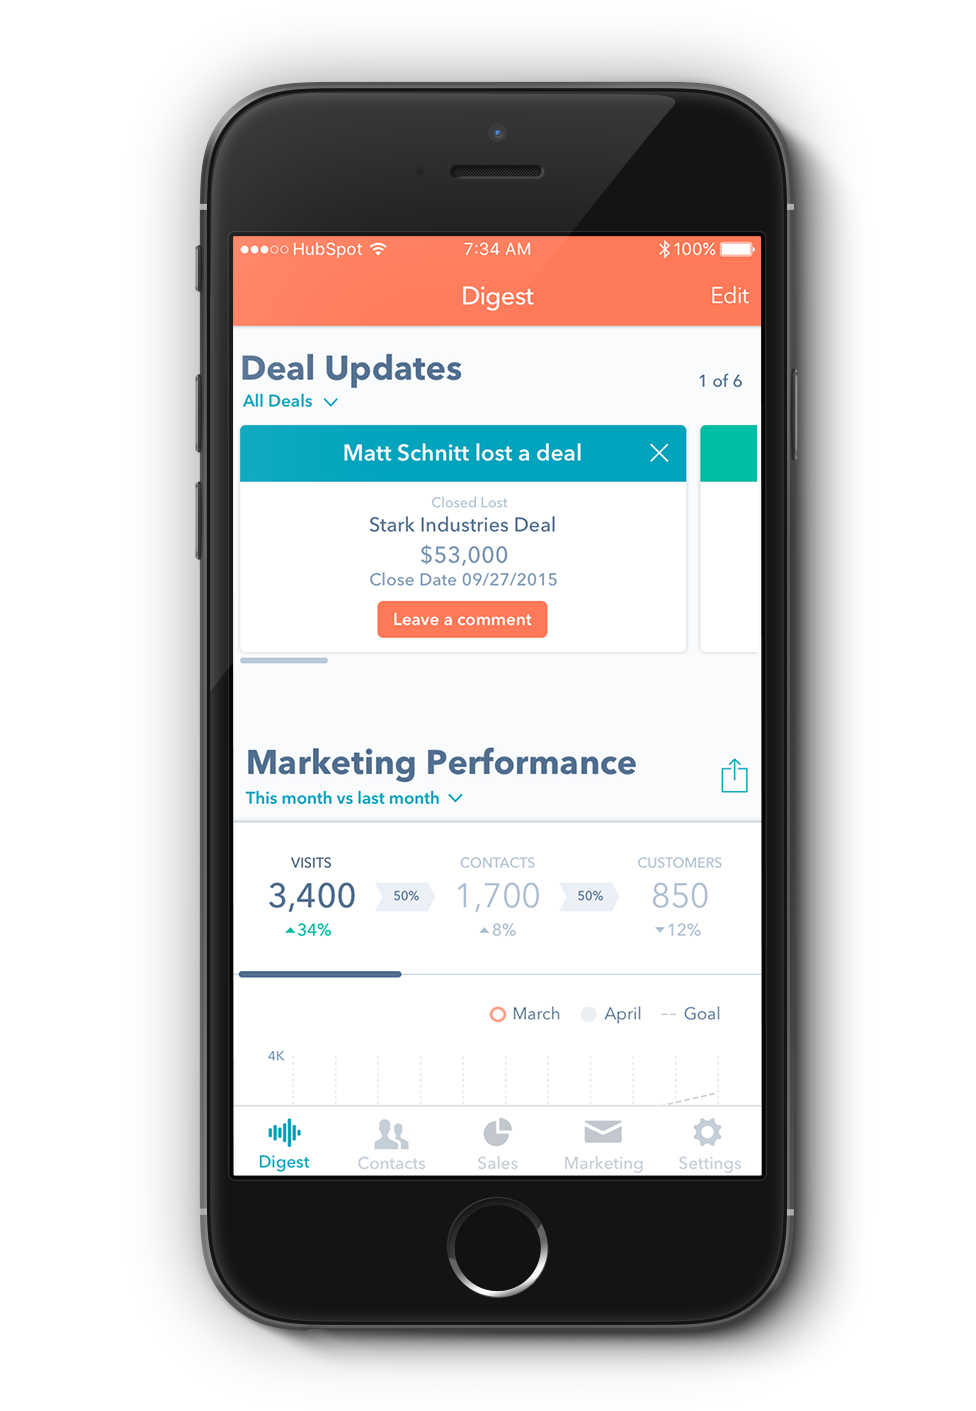 HubSpot new app on mobile phone